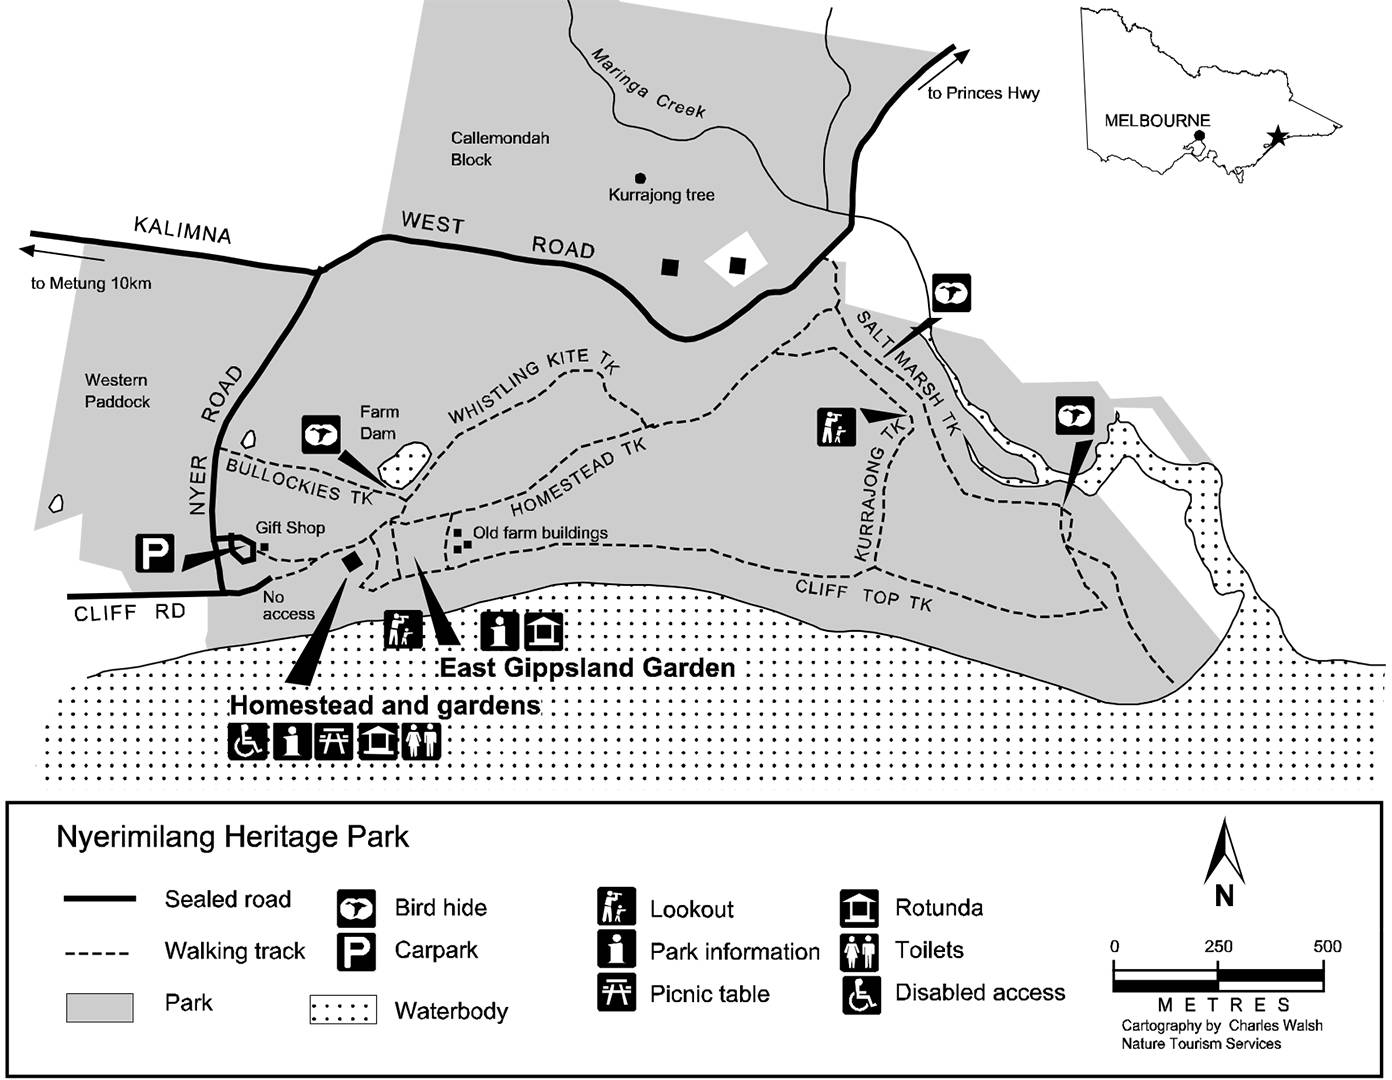 Map of Nyerimilang Heritage Park